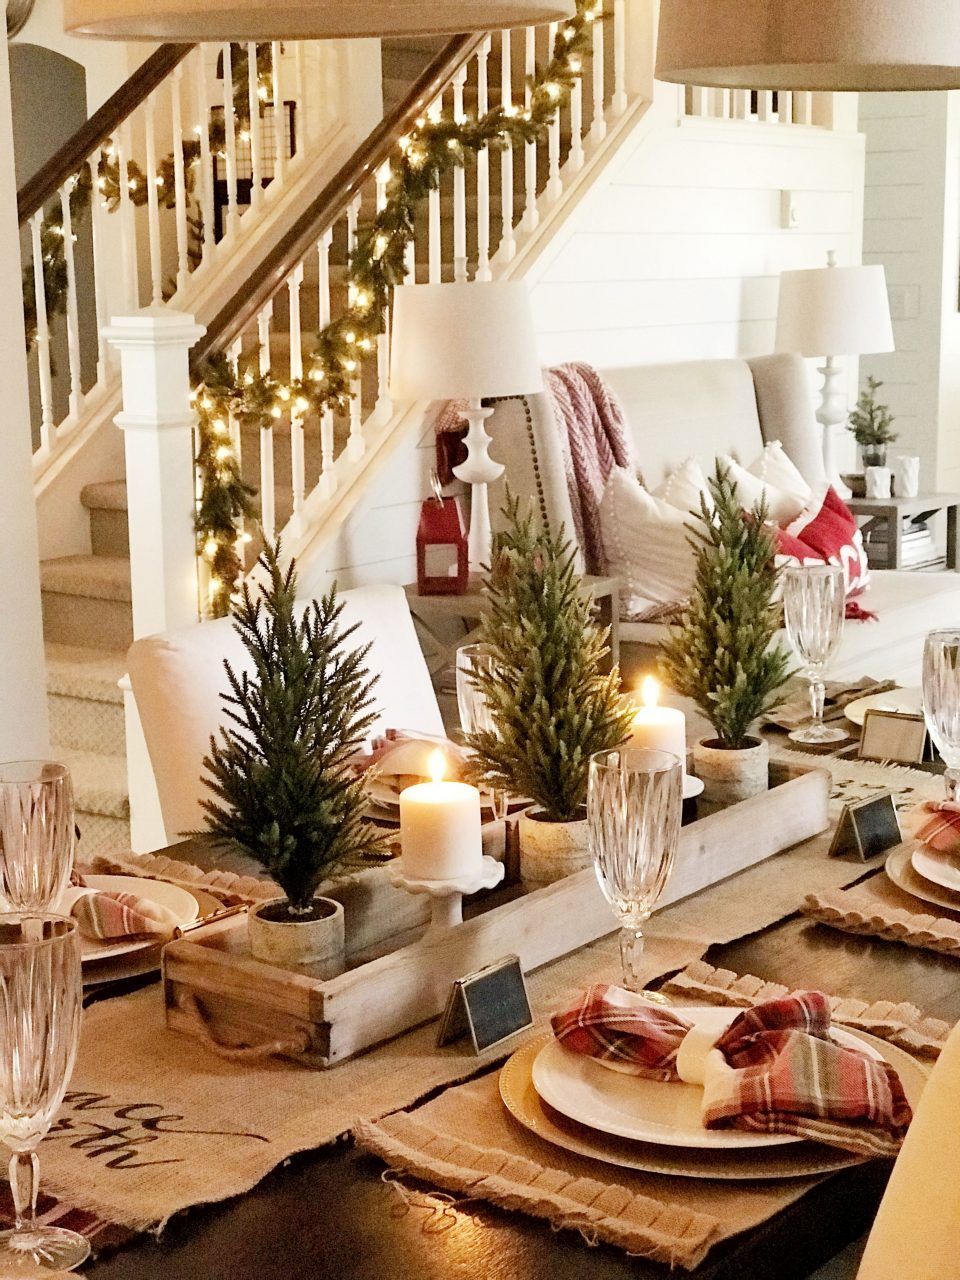 Christmas Decor Ideas For Your Dining Room Decor Simple And